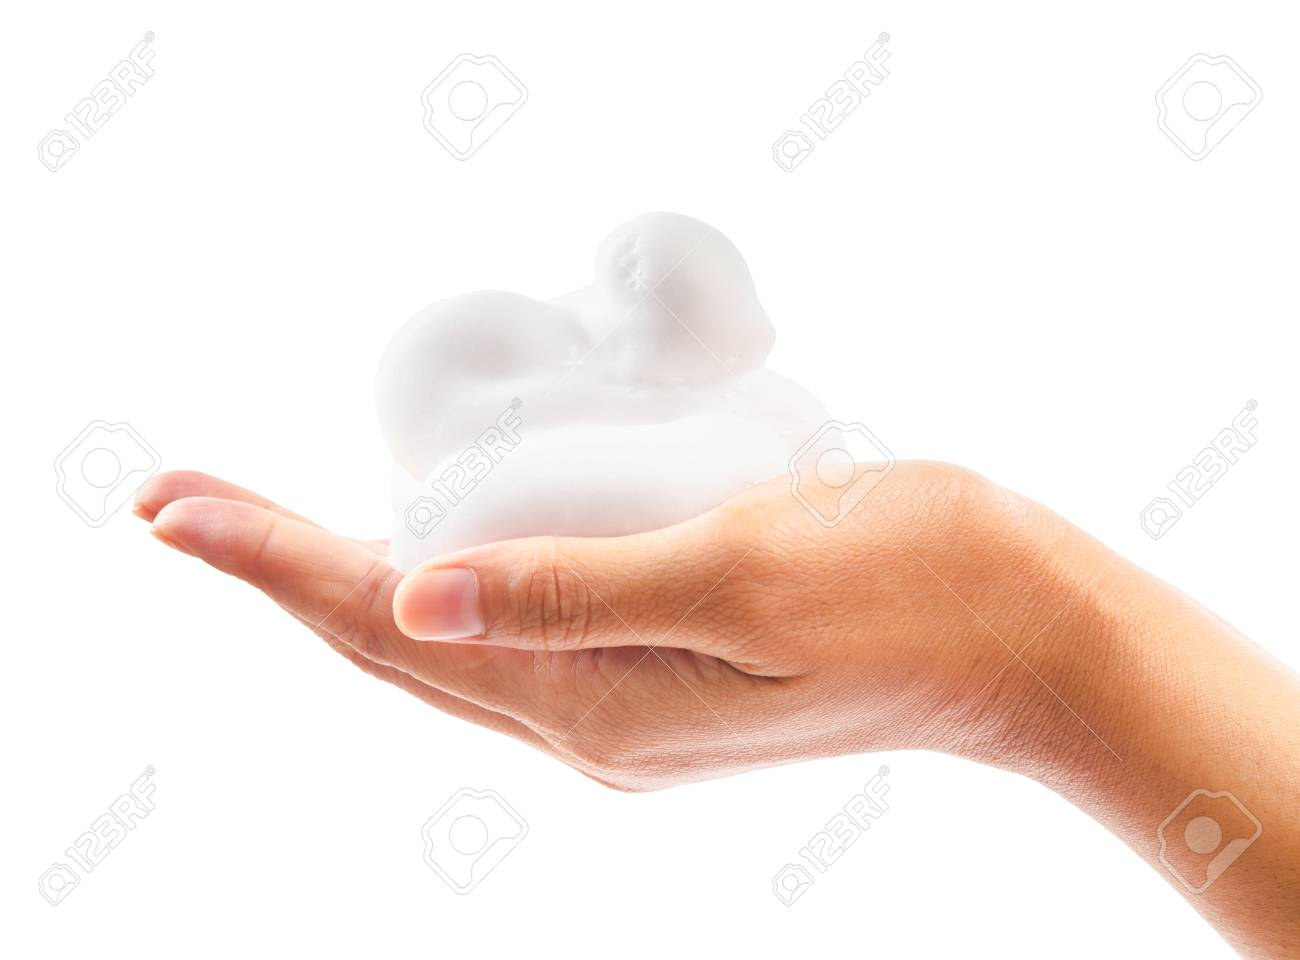 close up foam in hand isolated on white background, Save clipping path. - 88133288